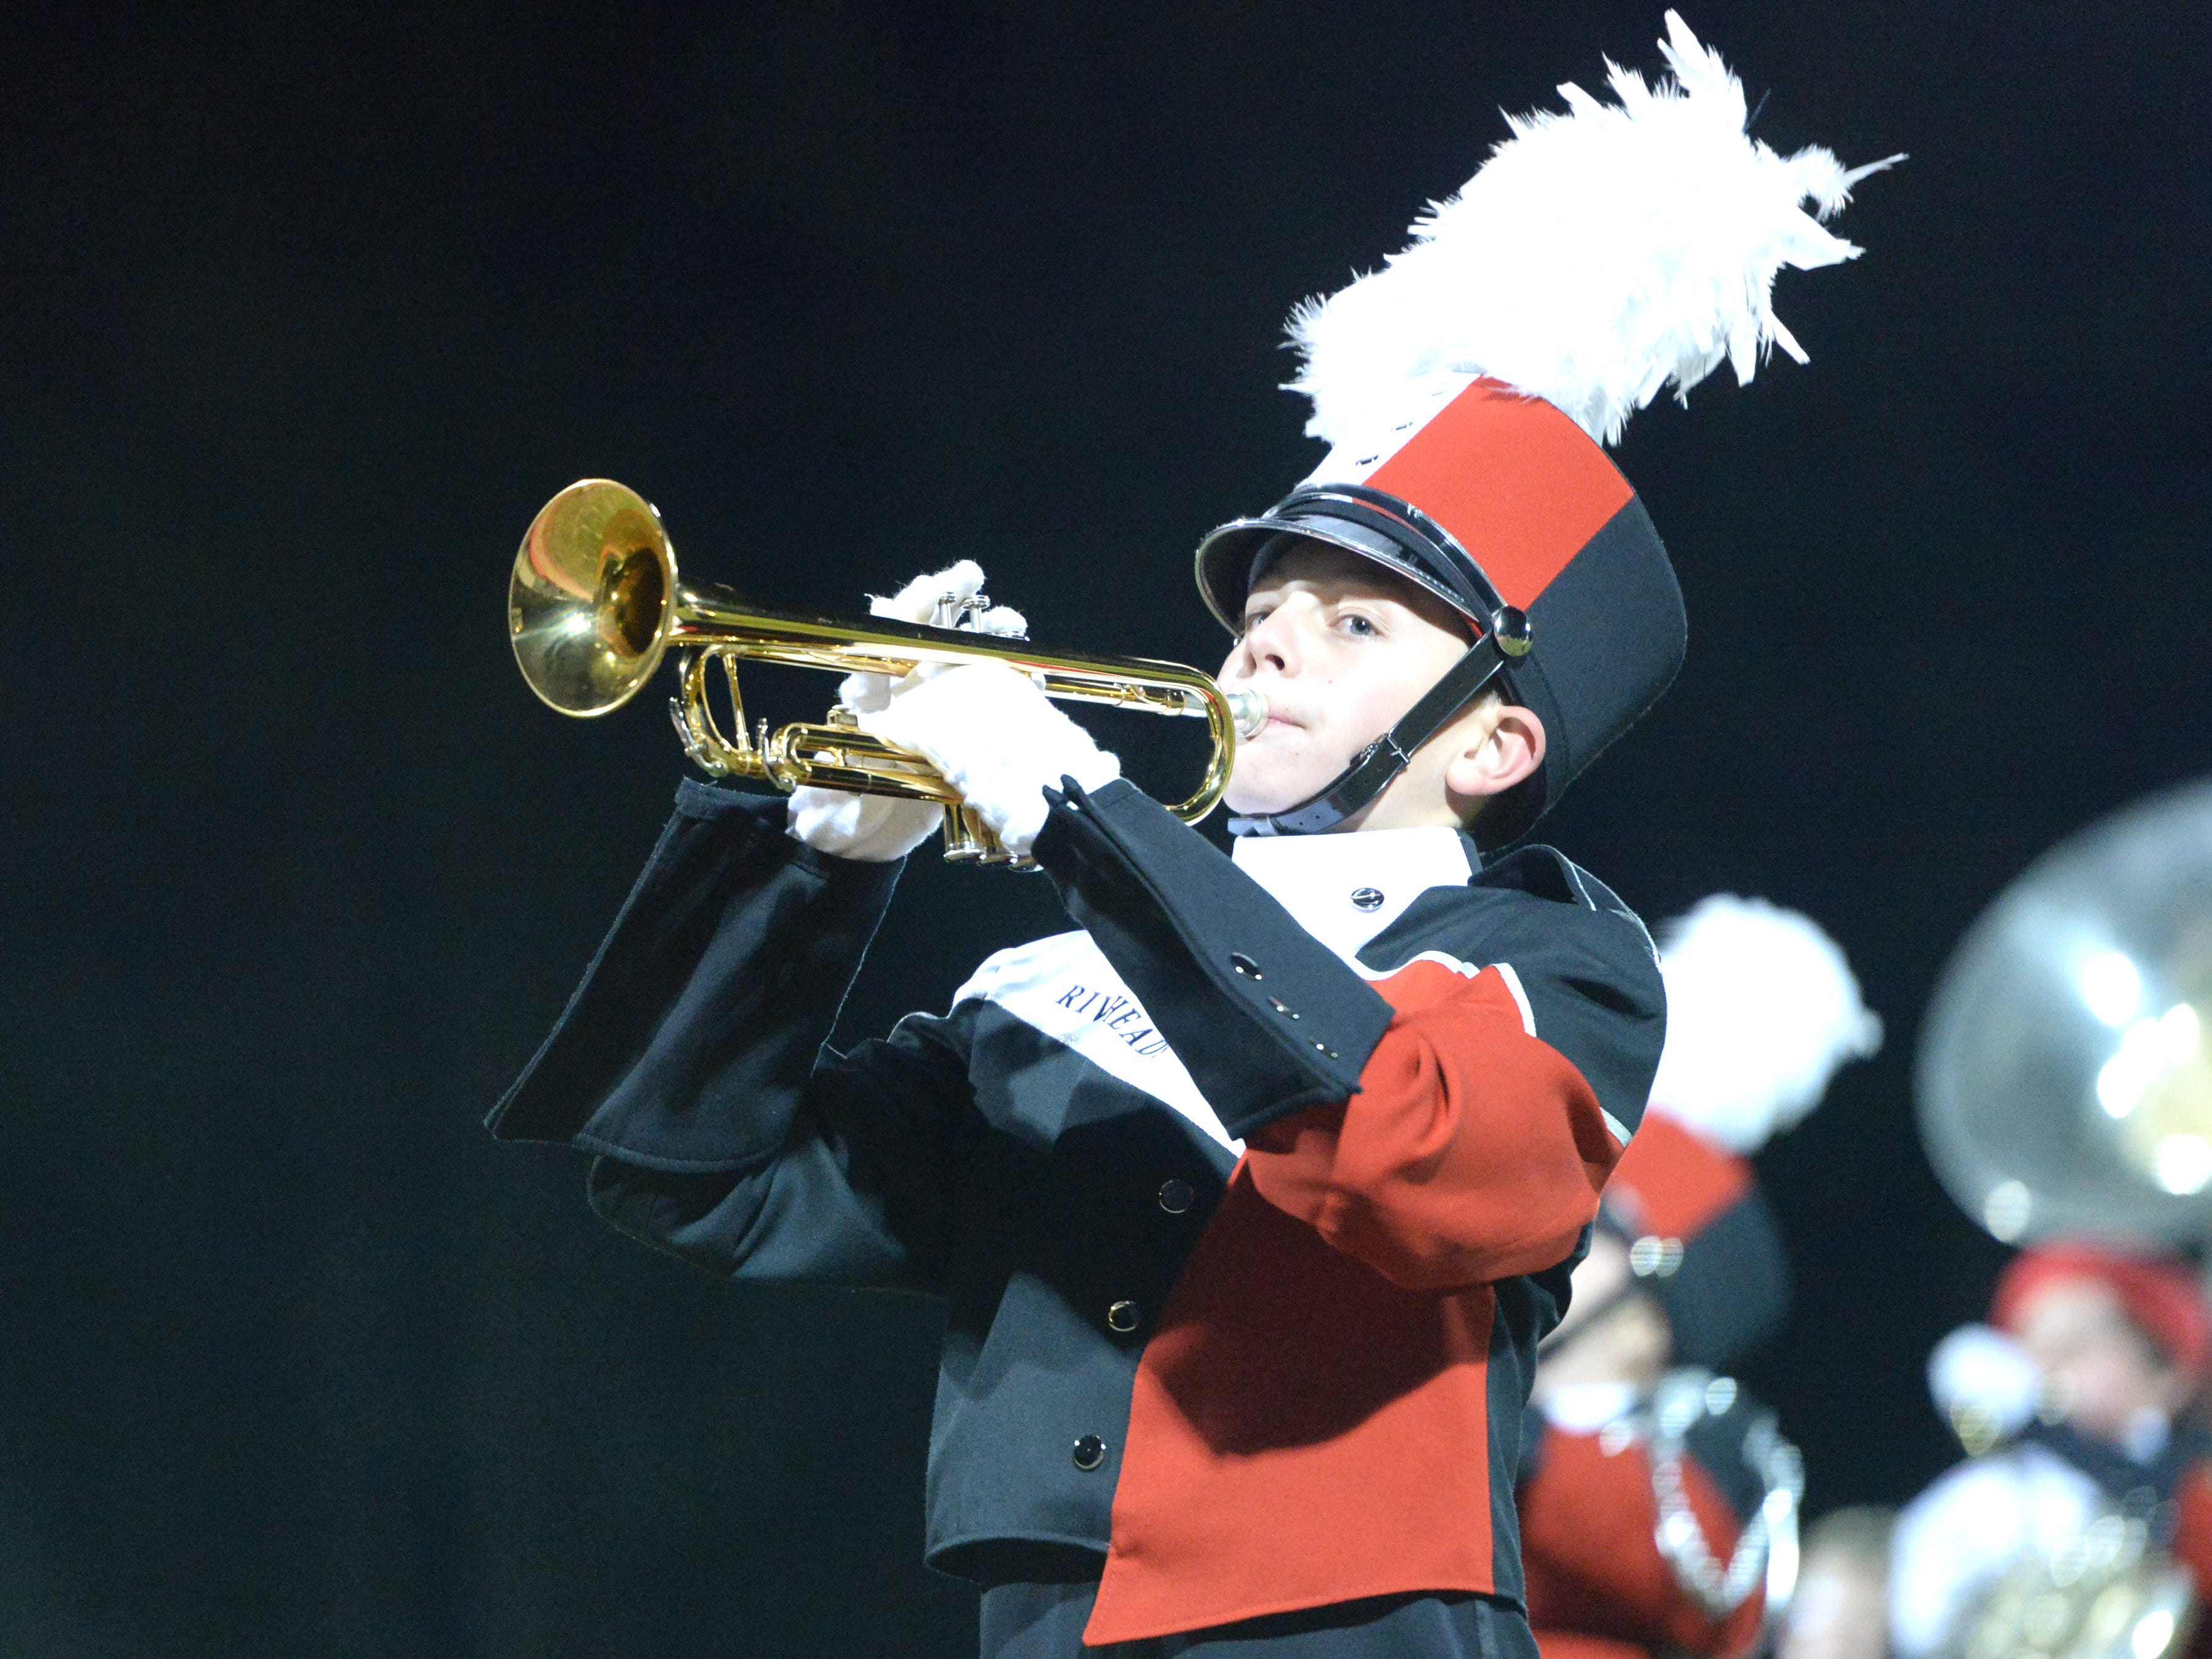 The Riverheads High School band performs during the Valley Showcase Tuesday at Riverheads.